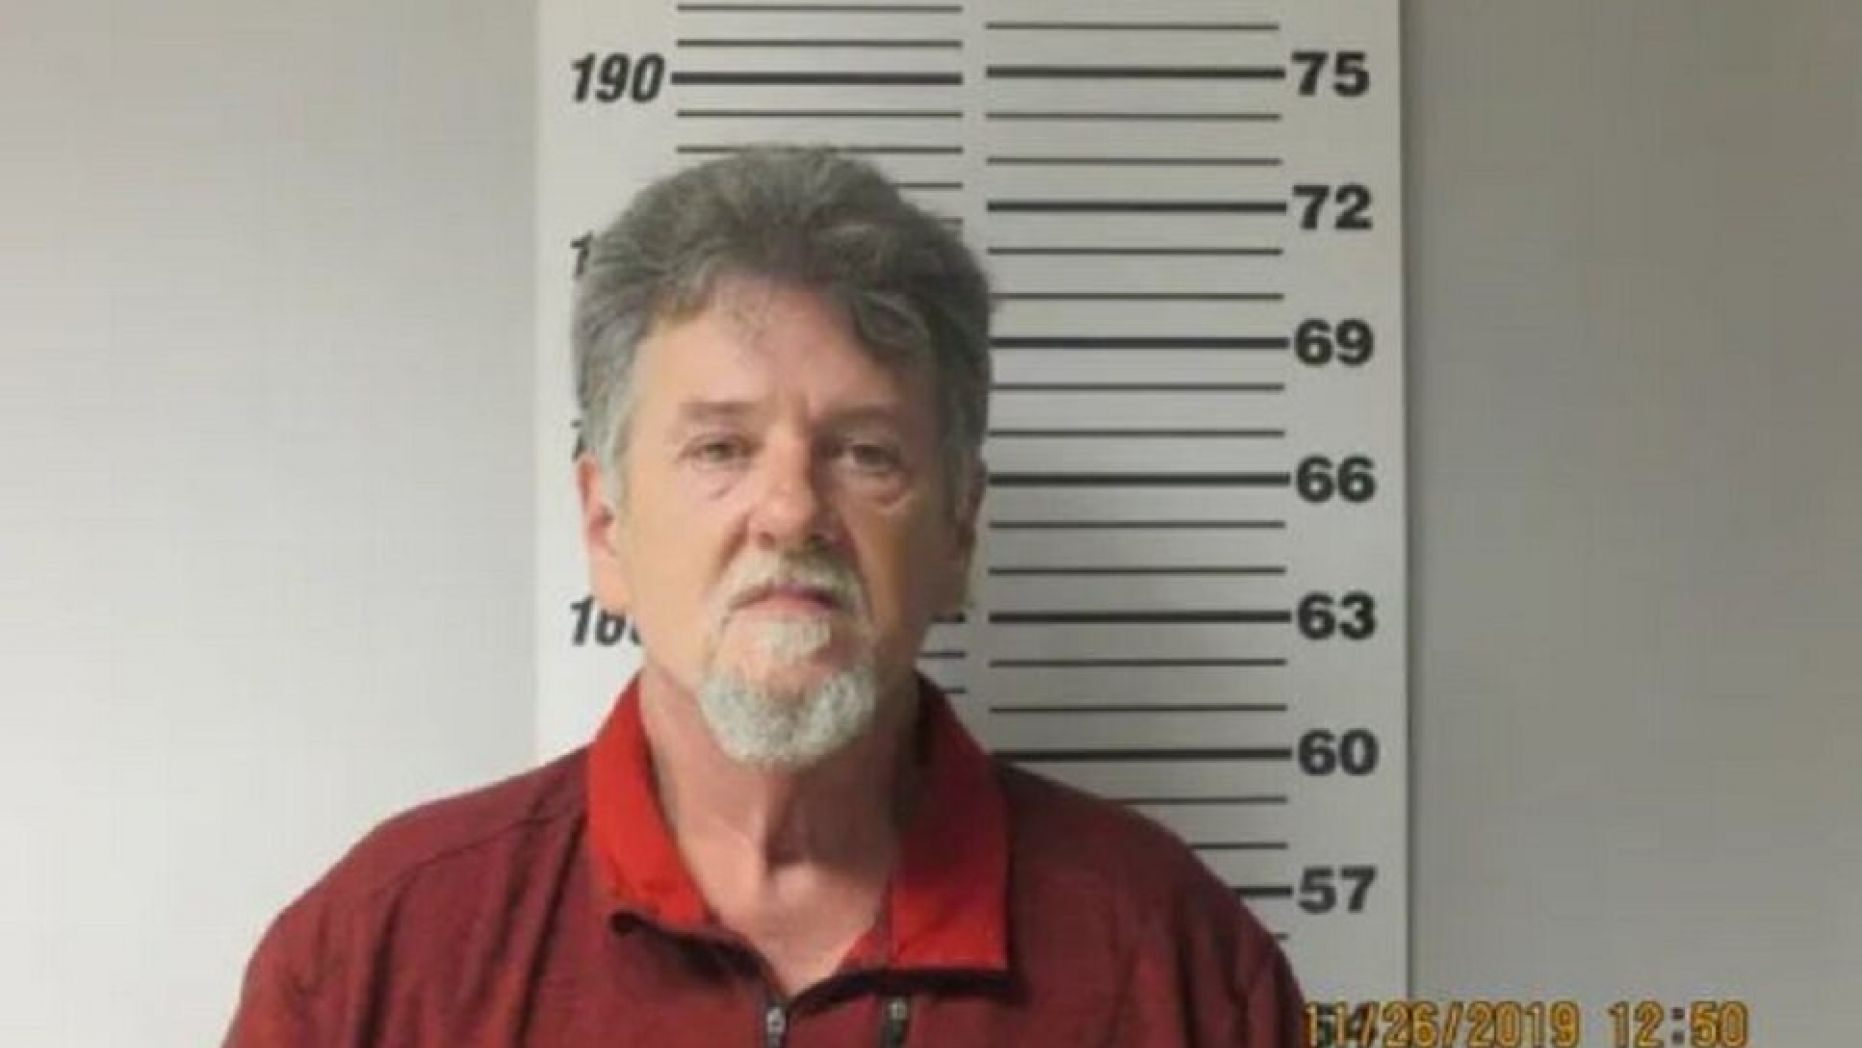 Larry Dinwiddie, 57, is charged in the death of his wife, Cynthia Dinwiddie, 56, after her body was found this week in a locked storage unit.